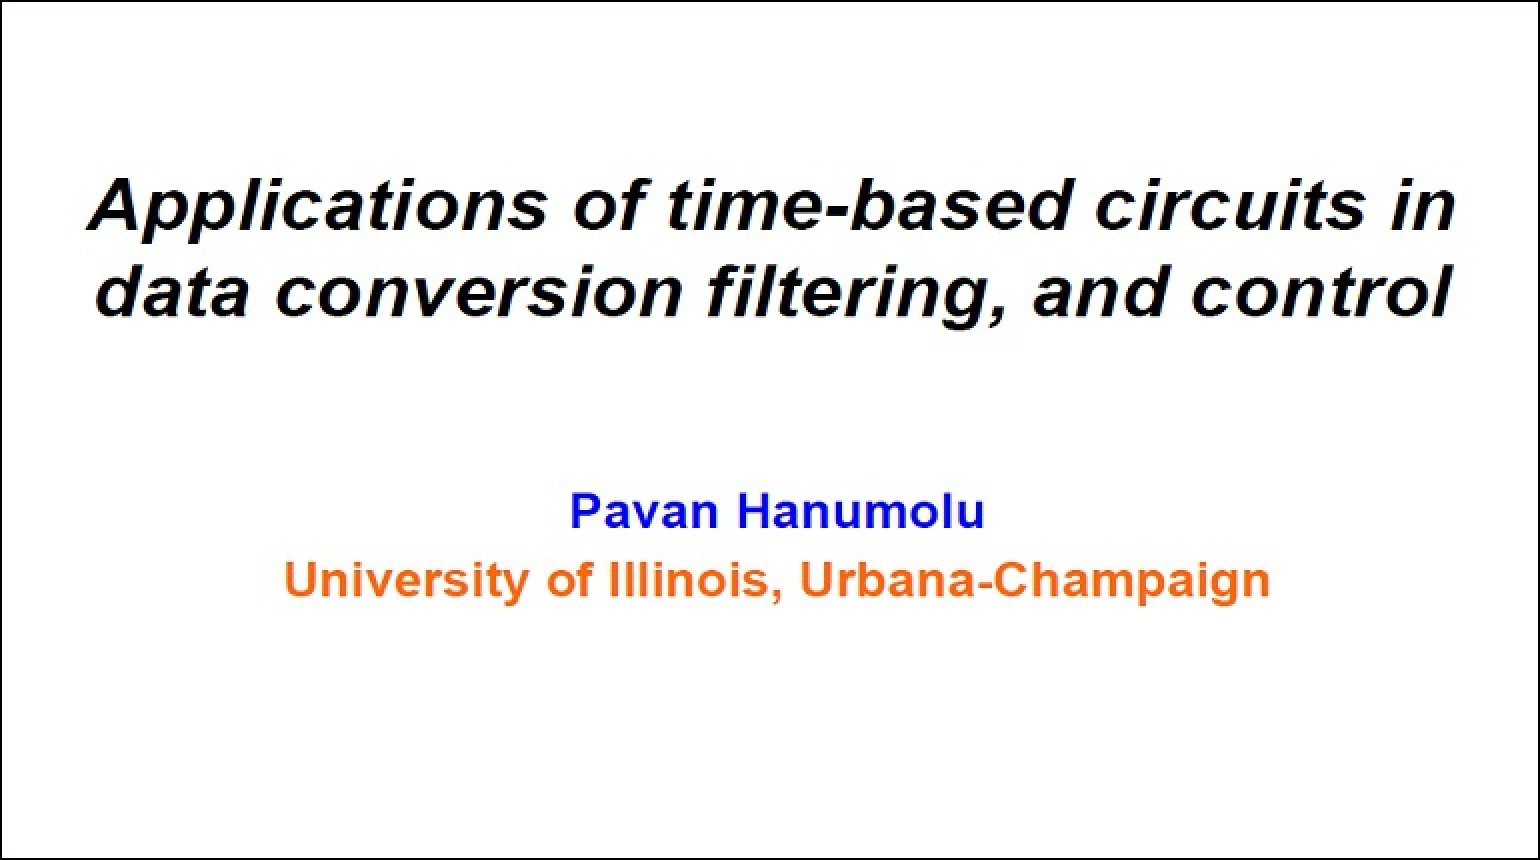 Applications of Time-based Circuits in Data Conversion, Filtering, and Control Video